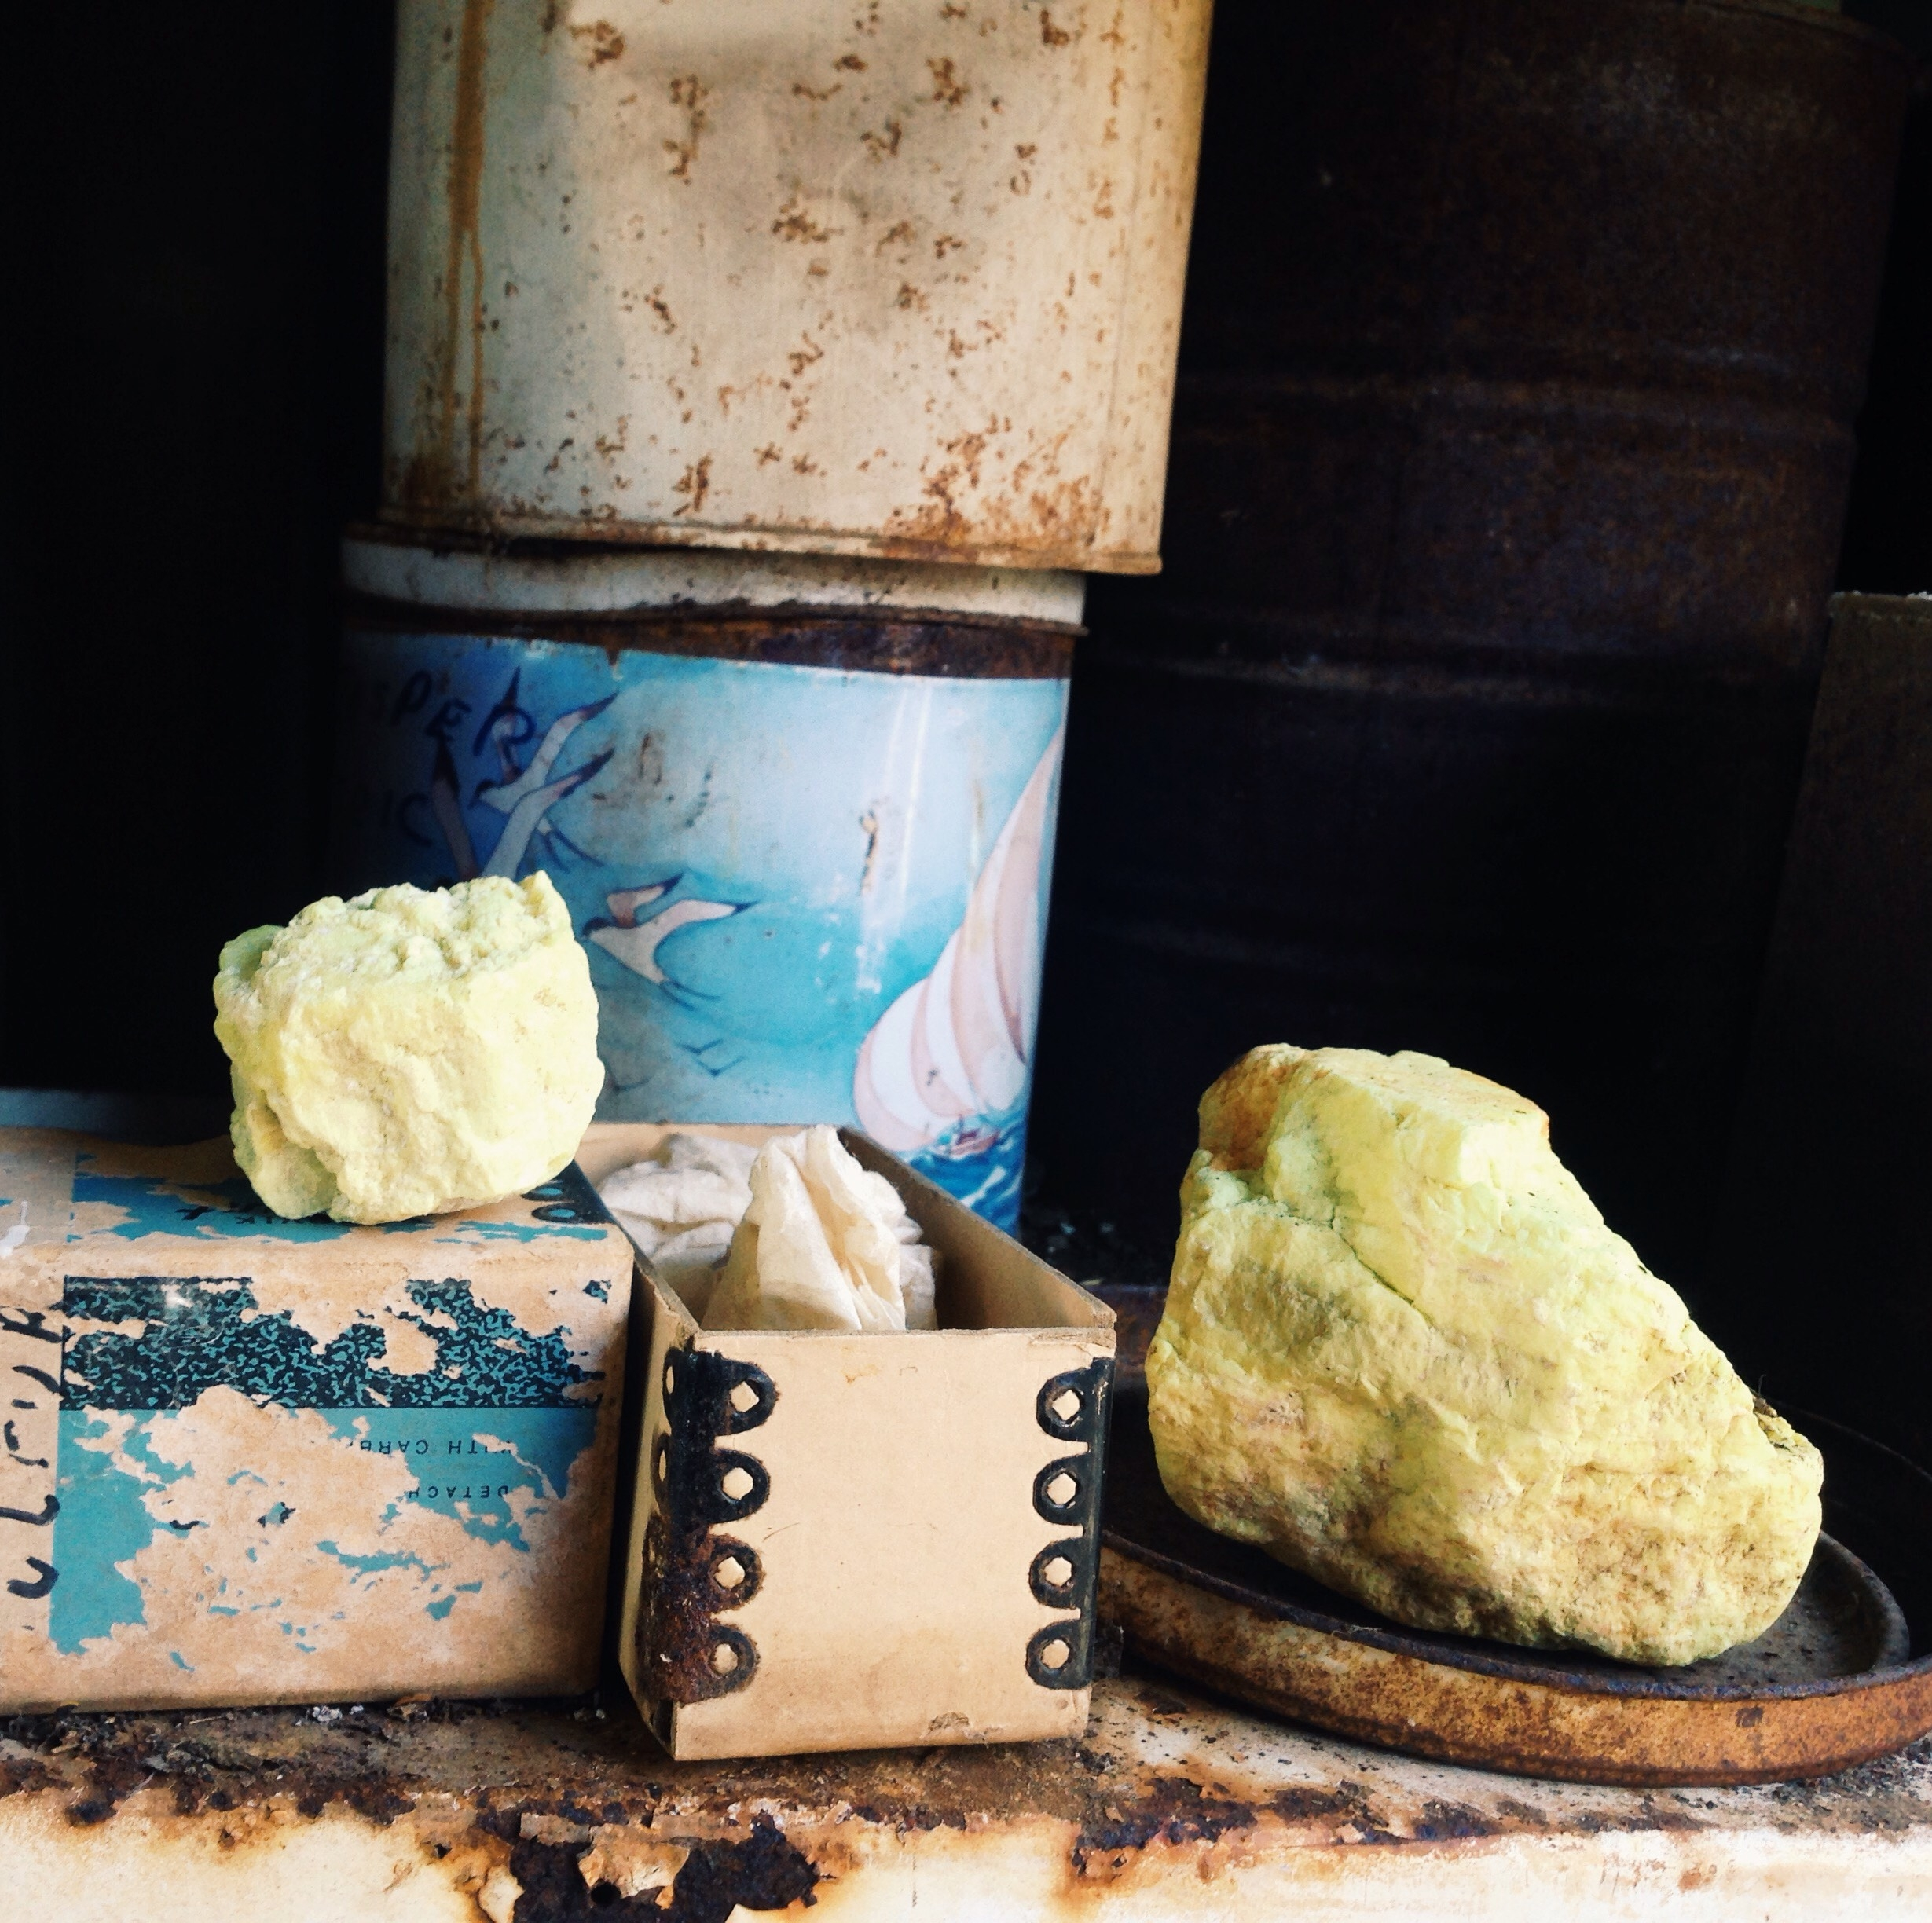 Sulphur sample from the amazing precious stone and mineral collection.